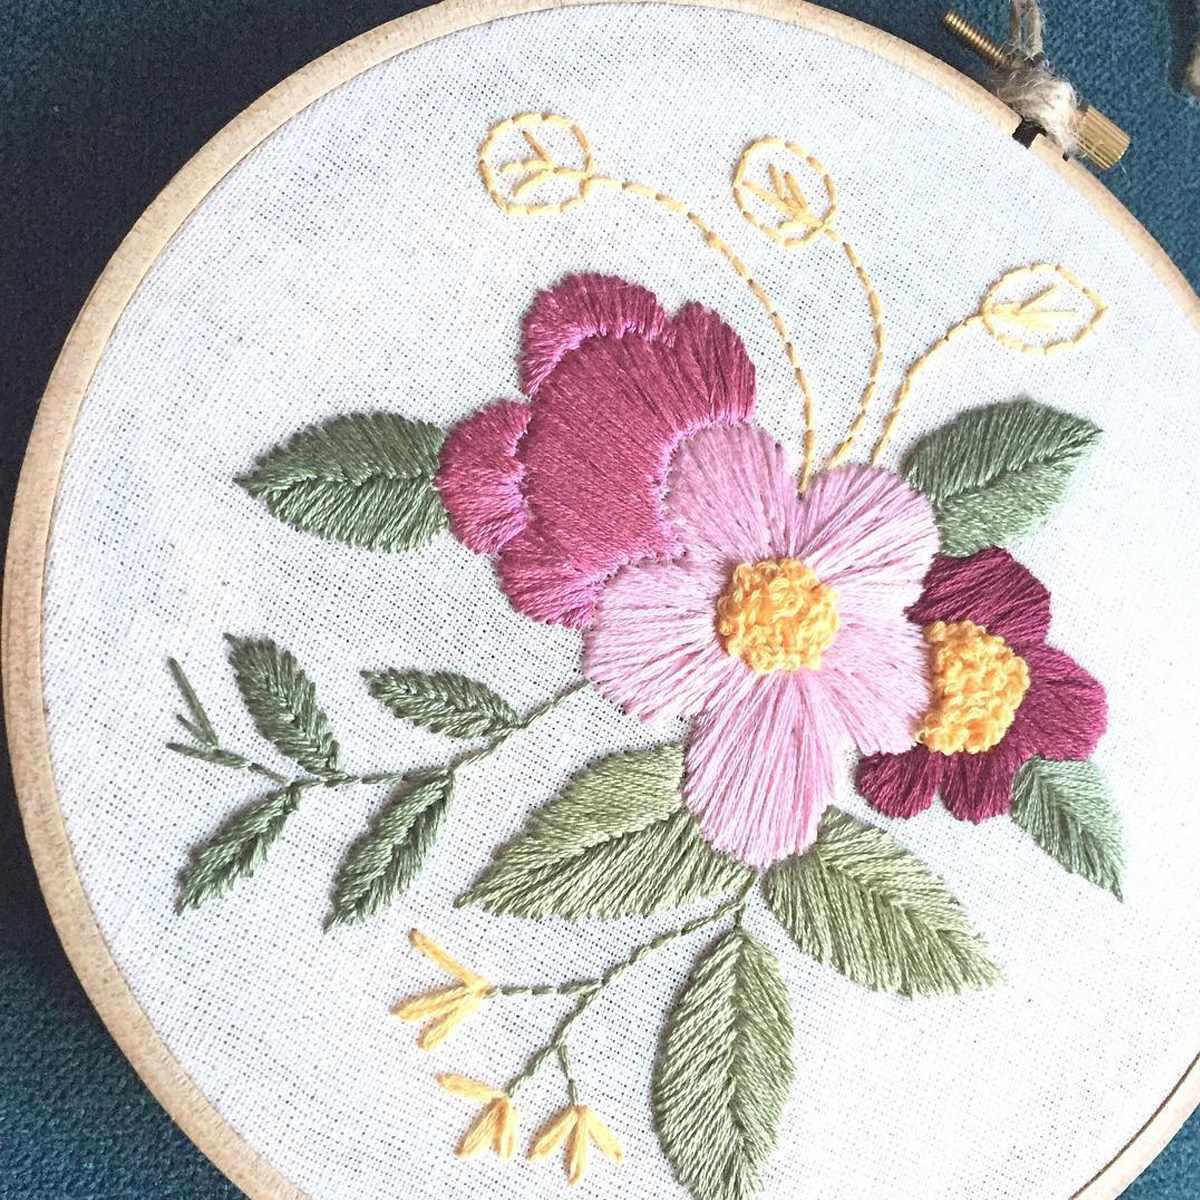 Hoop Art: Embroidery